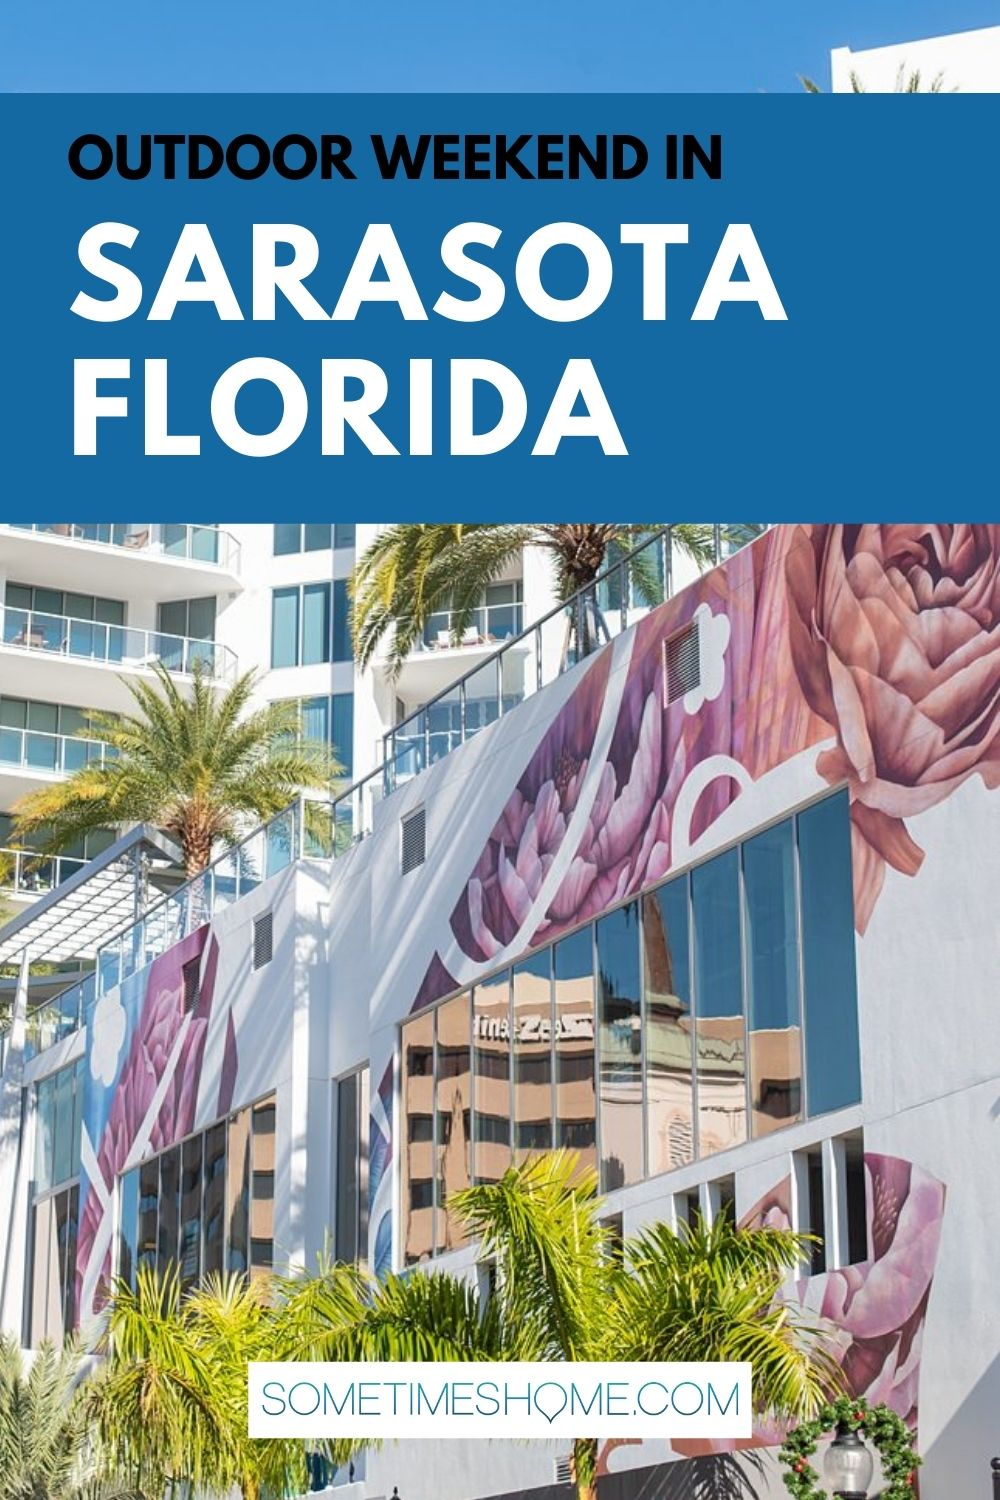 Outdoor weekend in Sarasota, Florida with a picture of a white building with a colorful mural and palm trees!